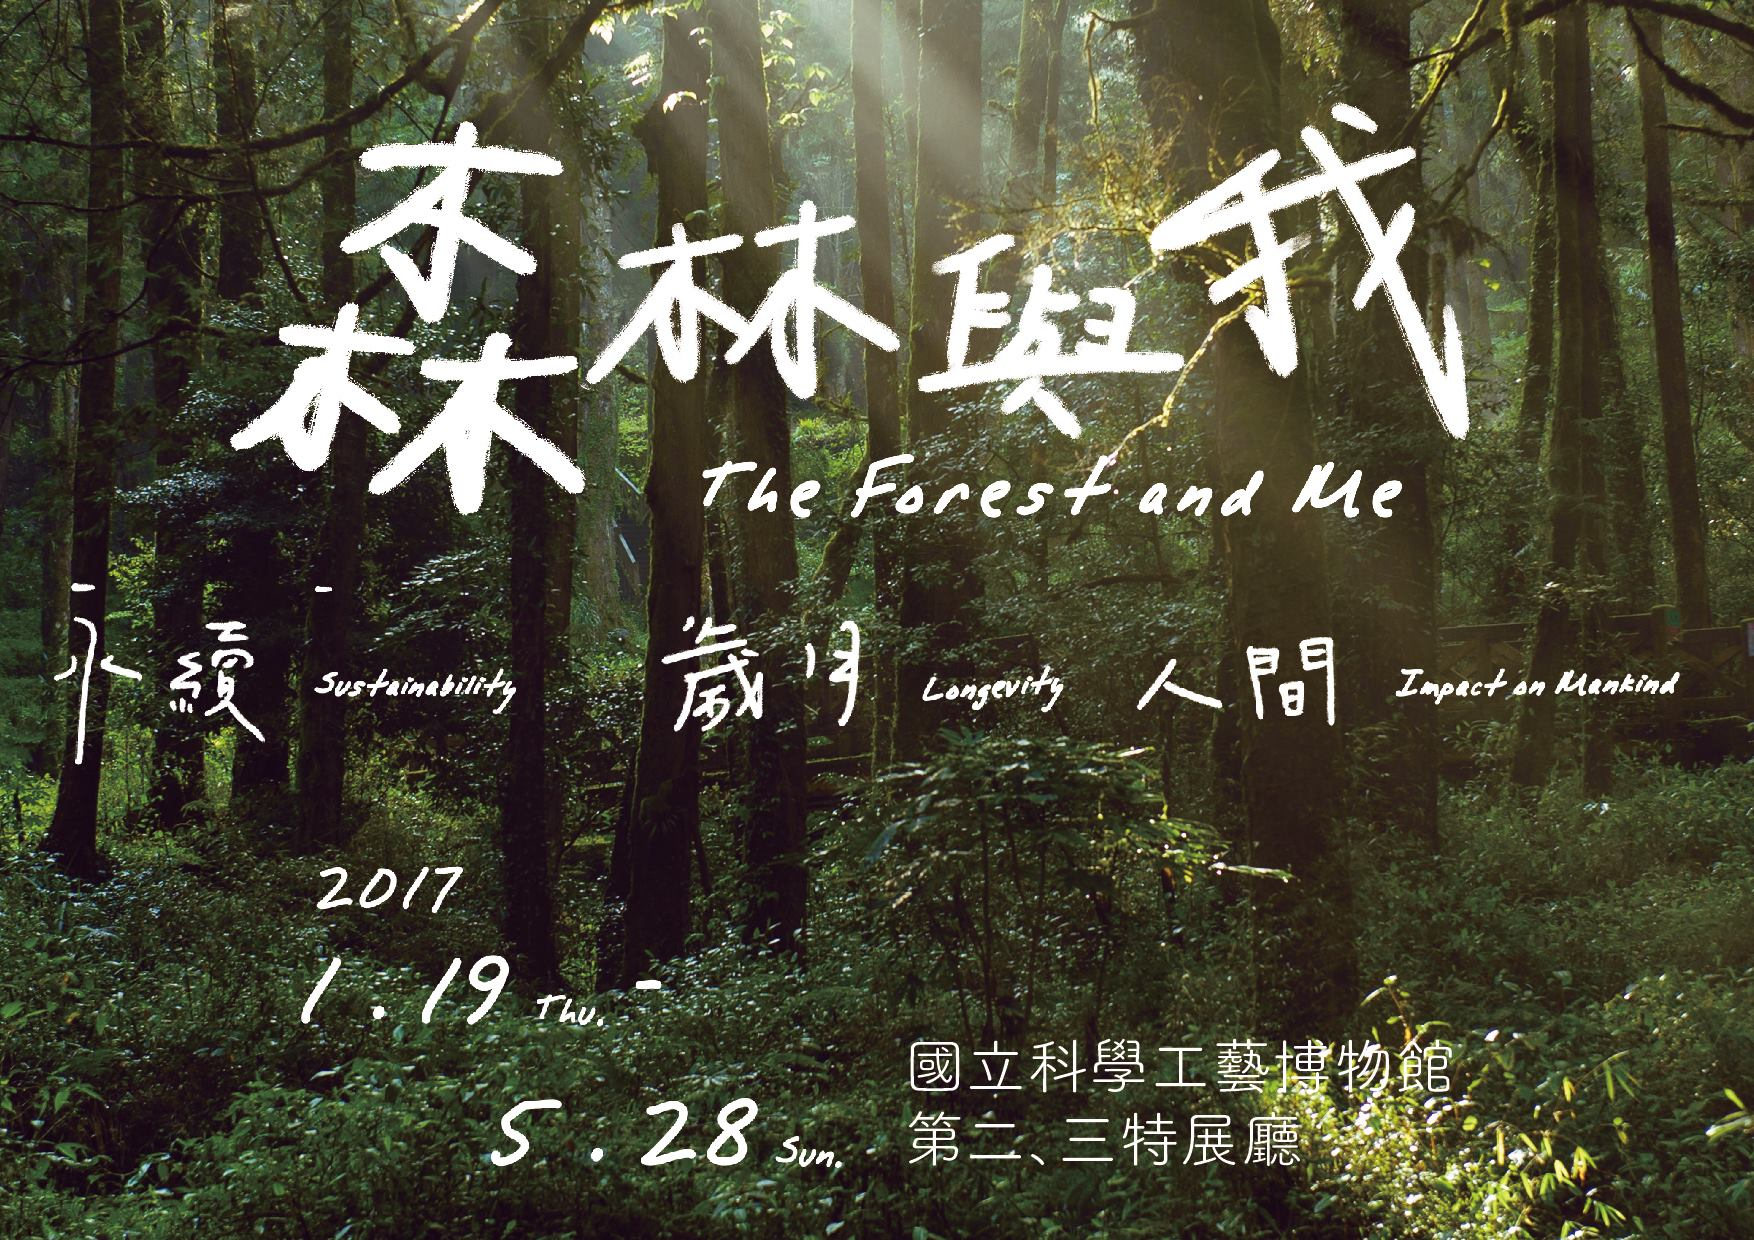 The Forest and Me